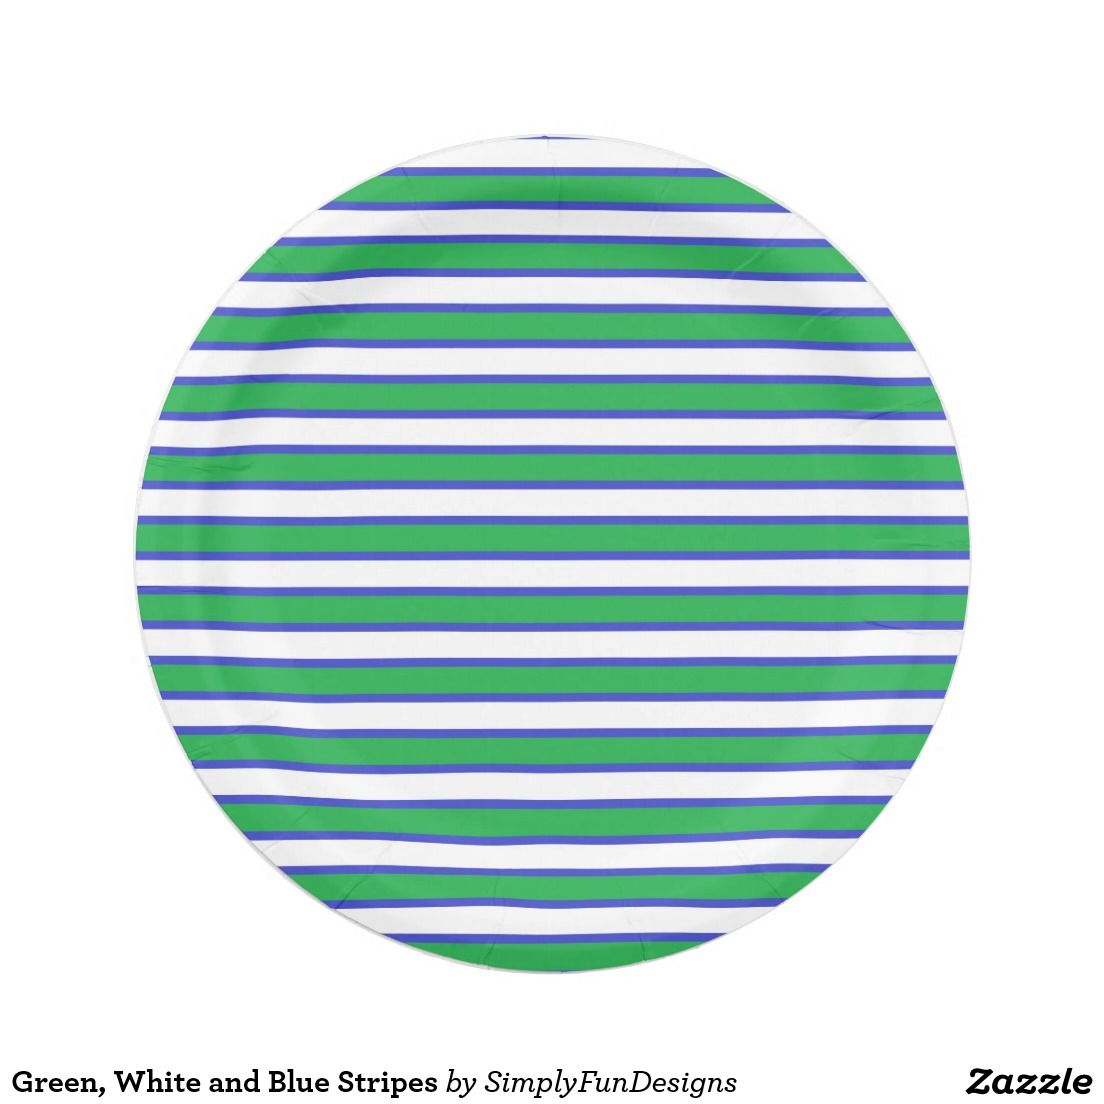 Green White and Blue Stripes Paper Plate  sc 1 st  Pinterest & Green White and Blue Stripes Paper Plate | Zazzle products designed ...